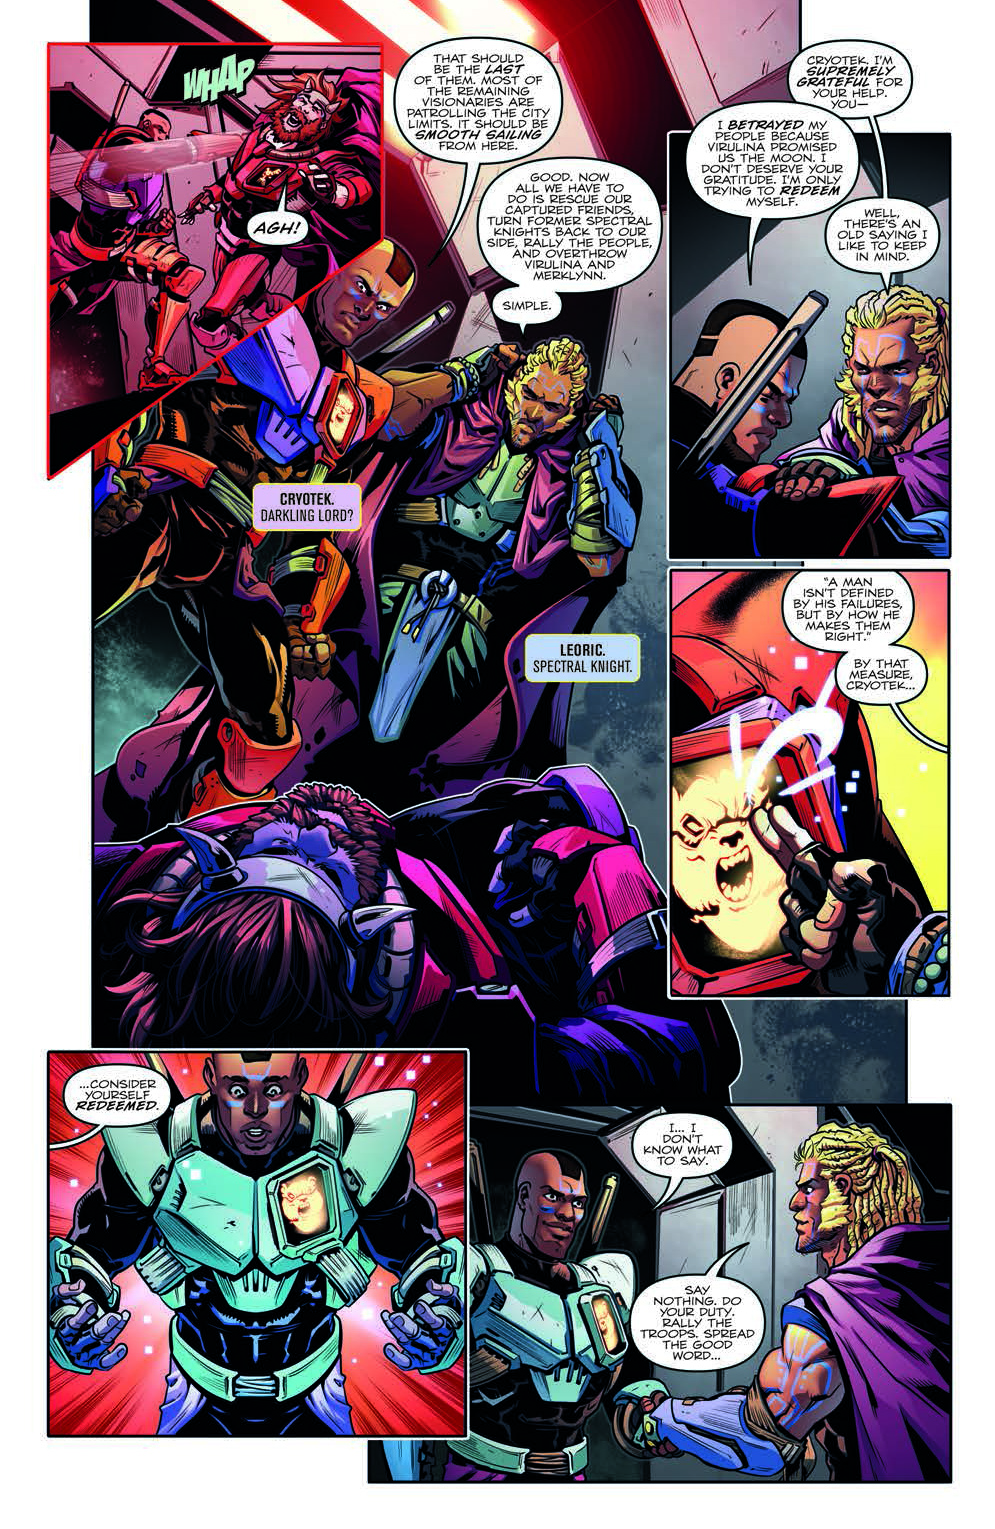 03-Transformers Vs Visionaries 5 Full Preview.jpg